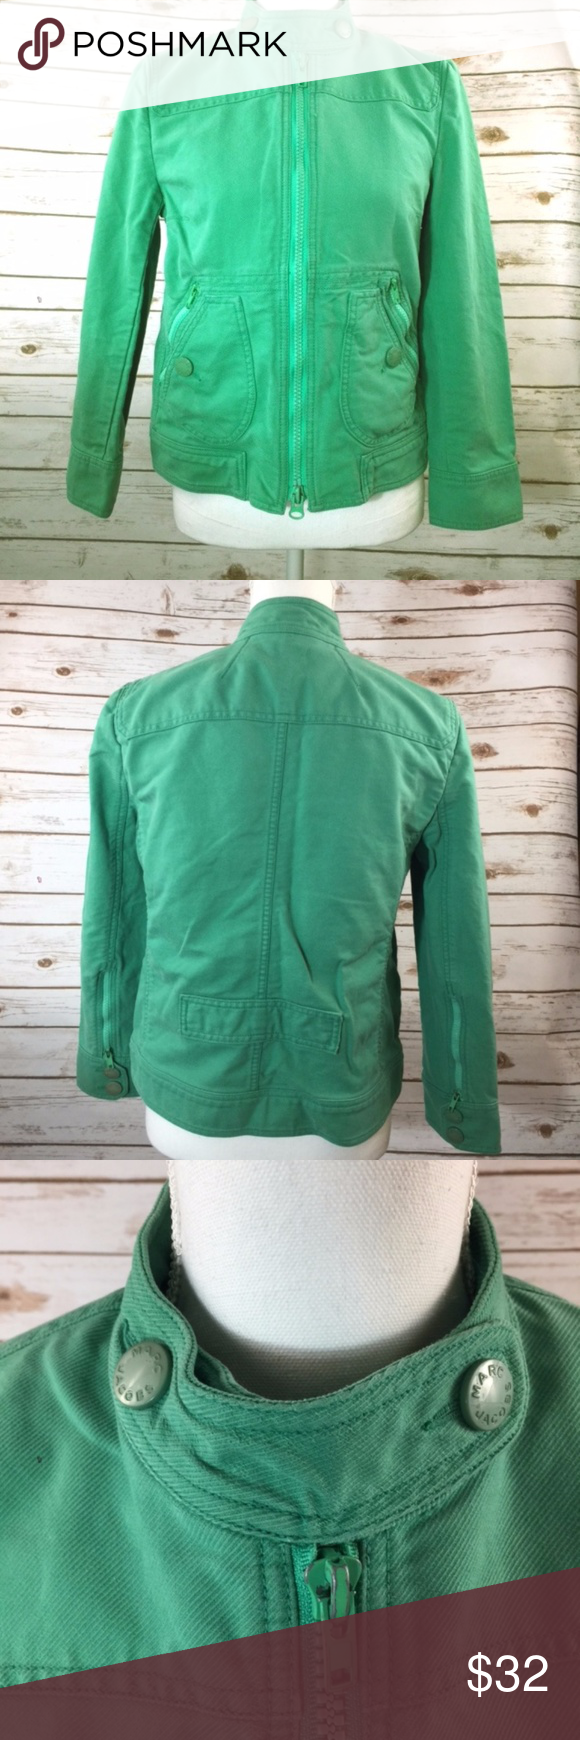 Marc Jacobs Jacket Lime Green | Clothes design, Marc jacobs